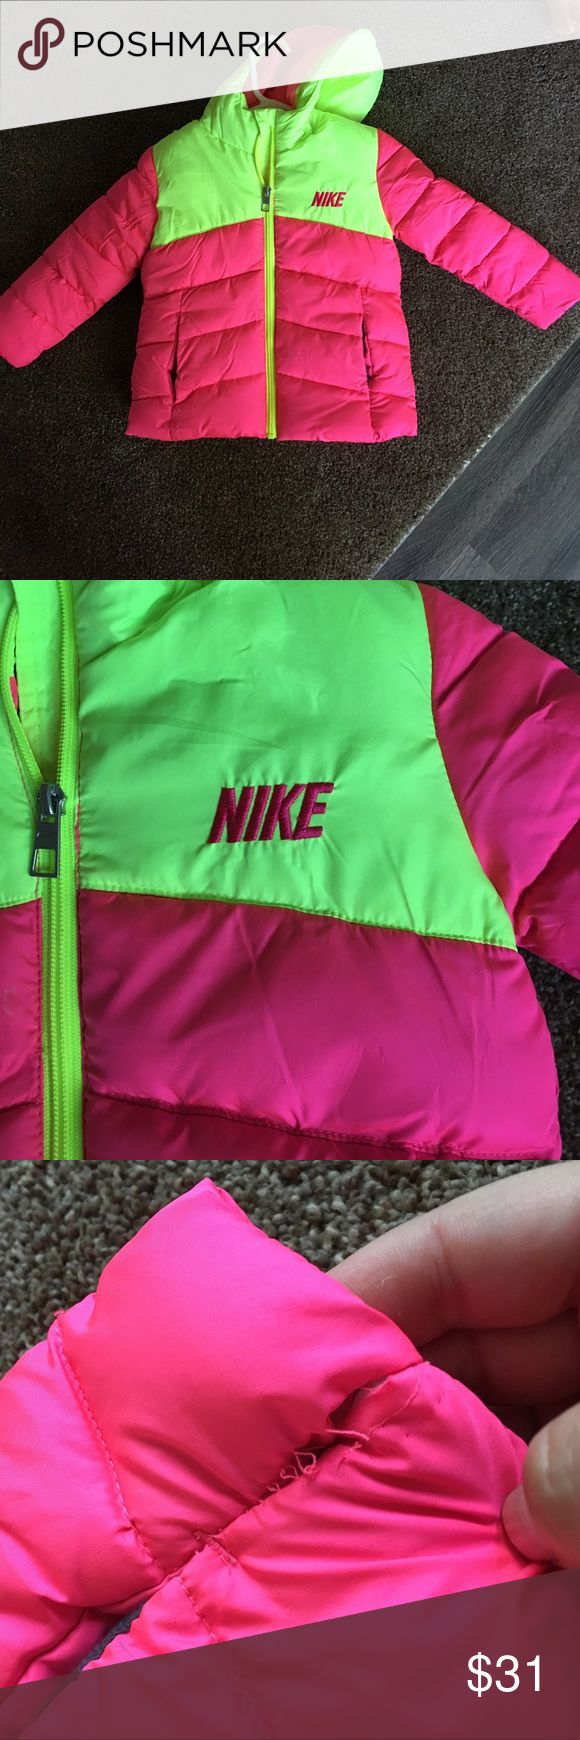 Toddler Girl Nike winter jacket 2T This was worn once! She hated it, so we never put it back on her. The stitching is coming apart on the bottom left under the pocket. I purchased it that way, but they wouldn't let me return it. Would be a super easy fix! Nike Jackets & Coats Puffers